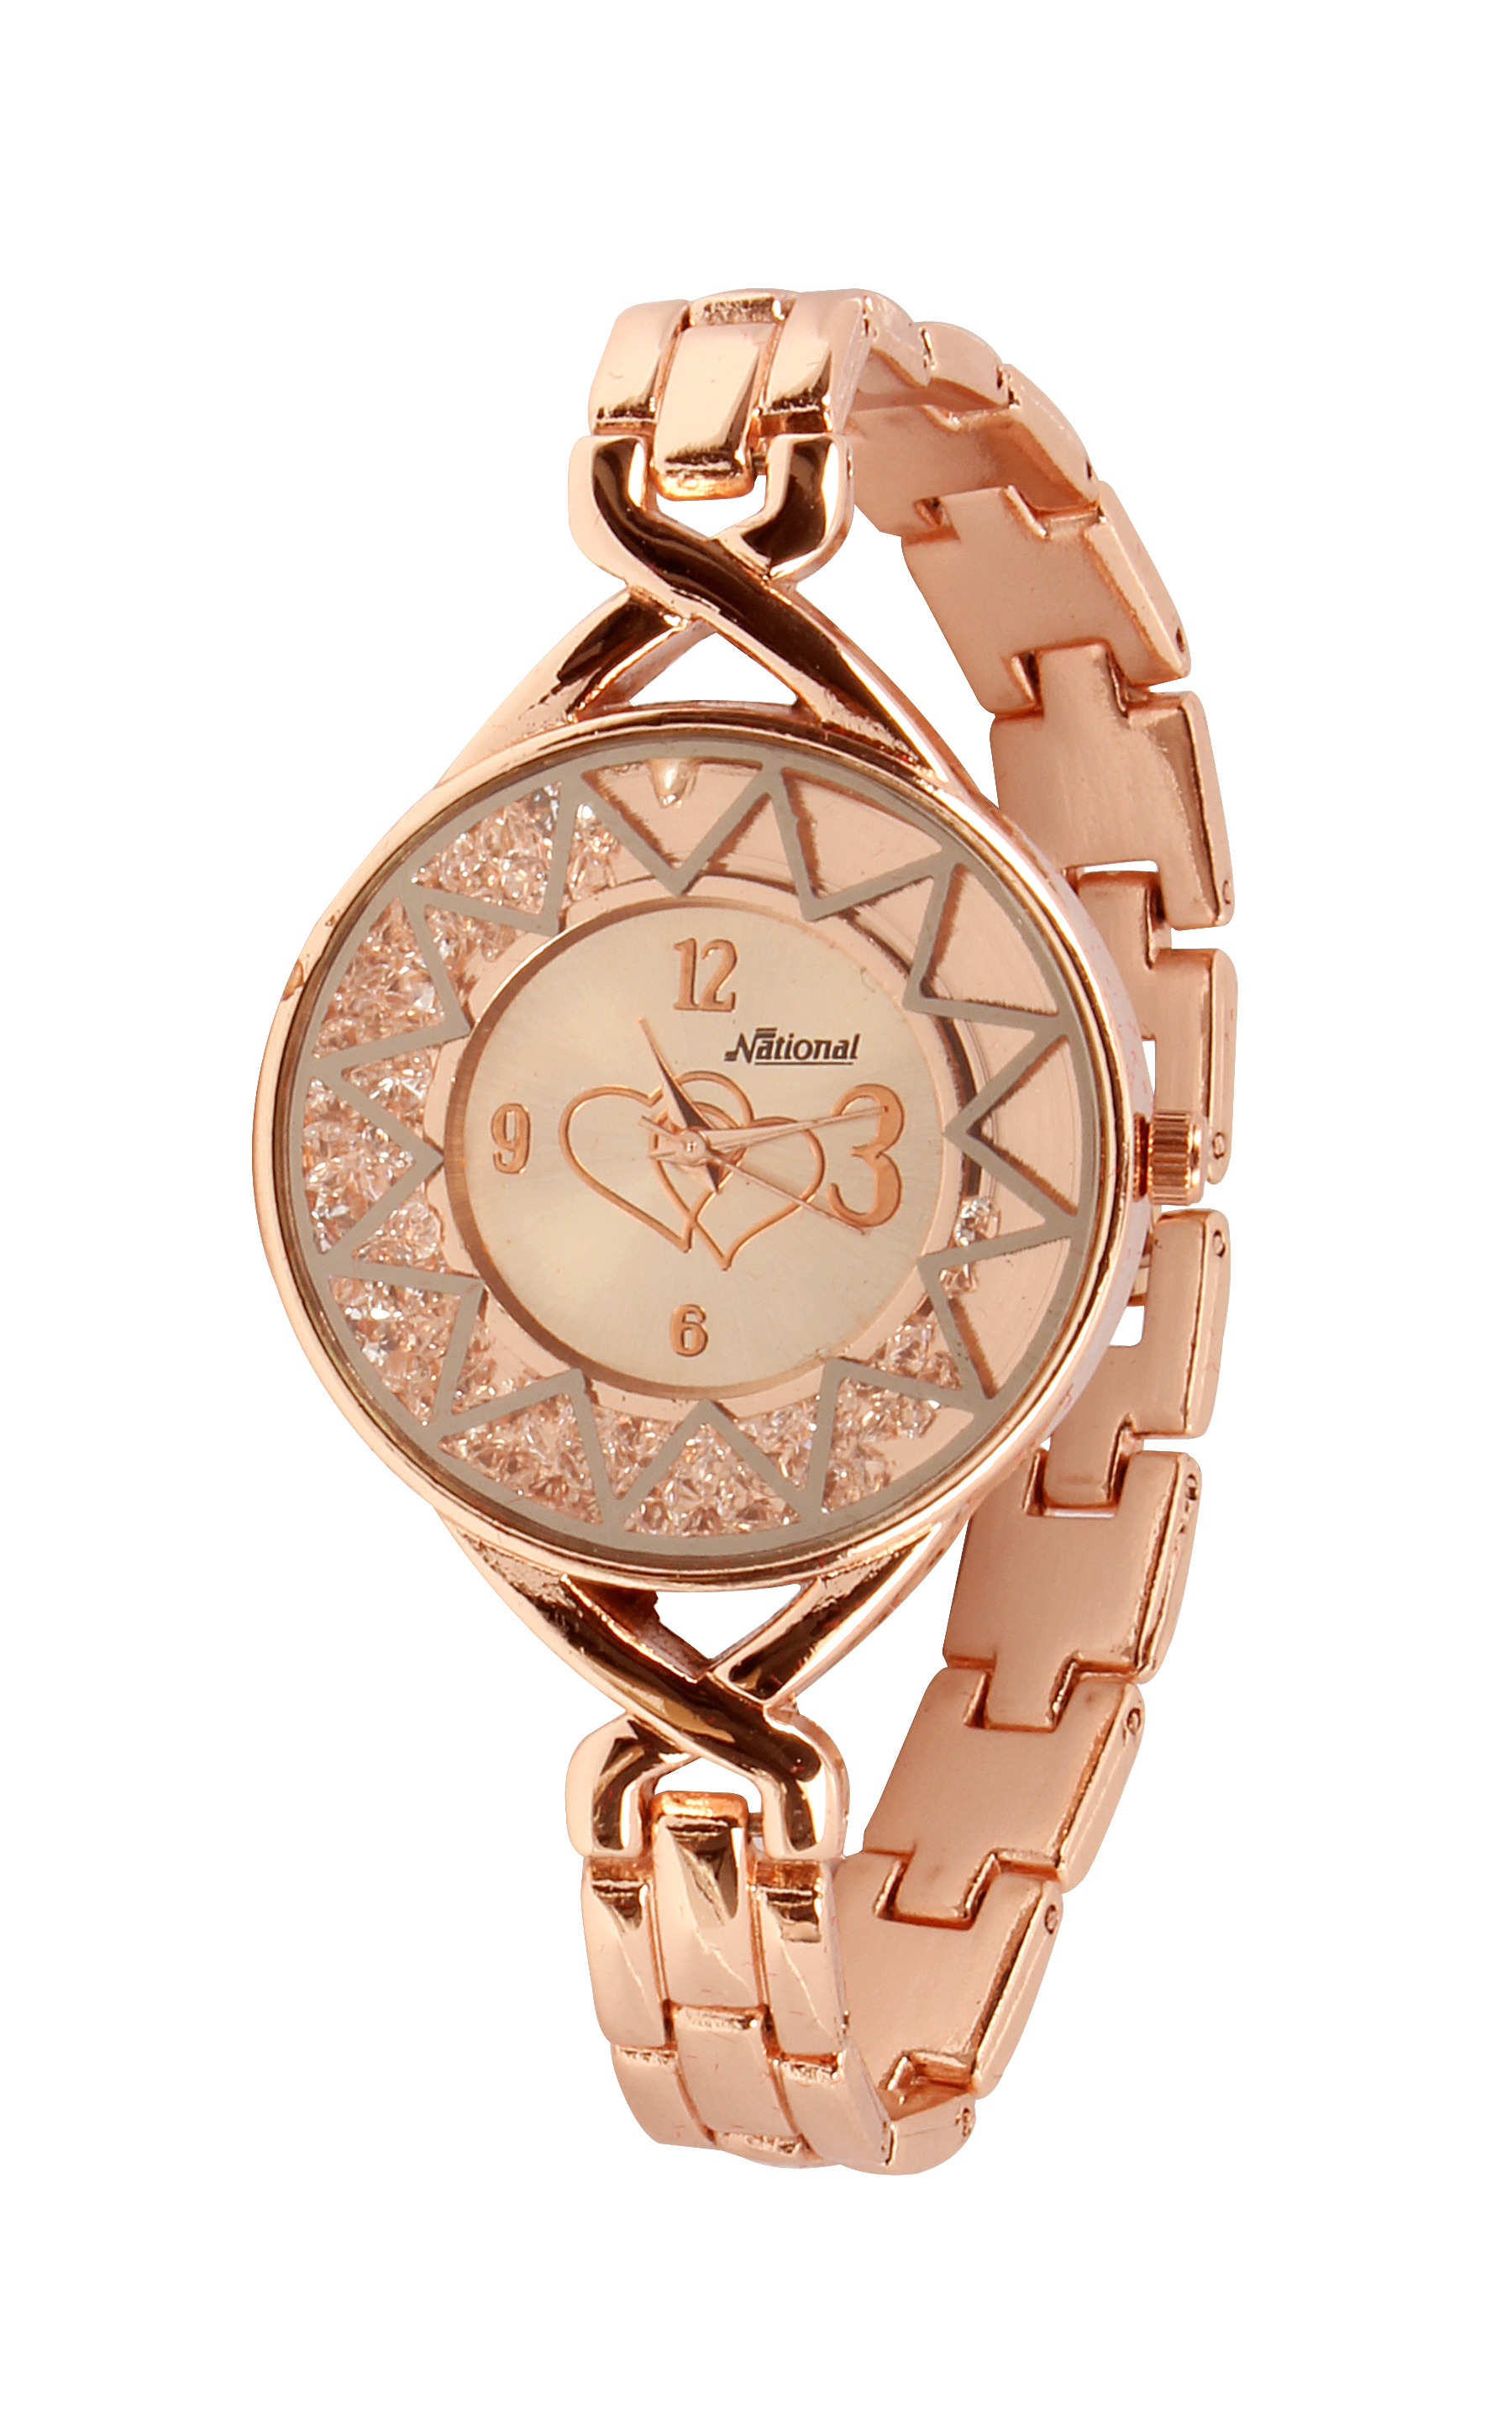 Rose gold dial female watch